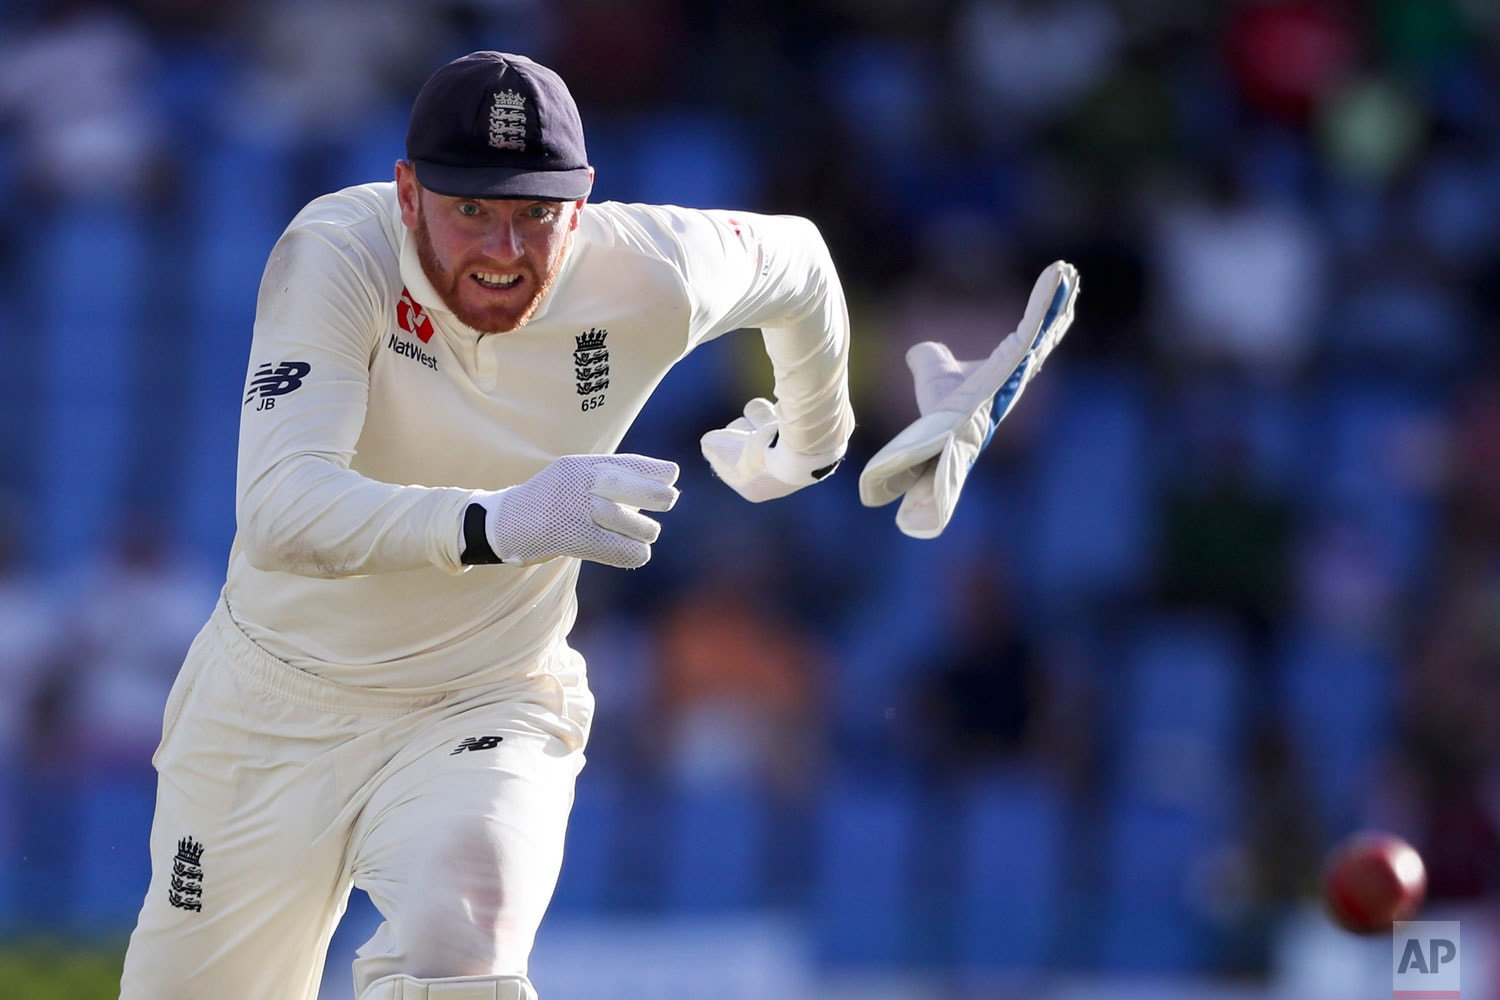 England'swicketkeeperr Jonny Bairstow runs to stop a shot played by West Indies' Darren Bravo during day two of the second Test cricket match at the Sir Vivian Richards Stadium in North Sound, Antigua and Barbuda, Friday, February 1, 2019. (AP Photo/Ricardo Mazalan)